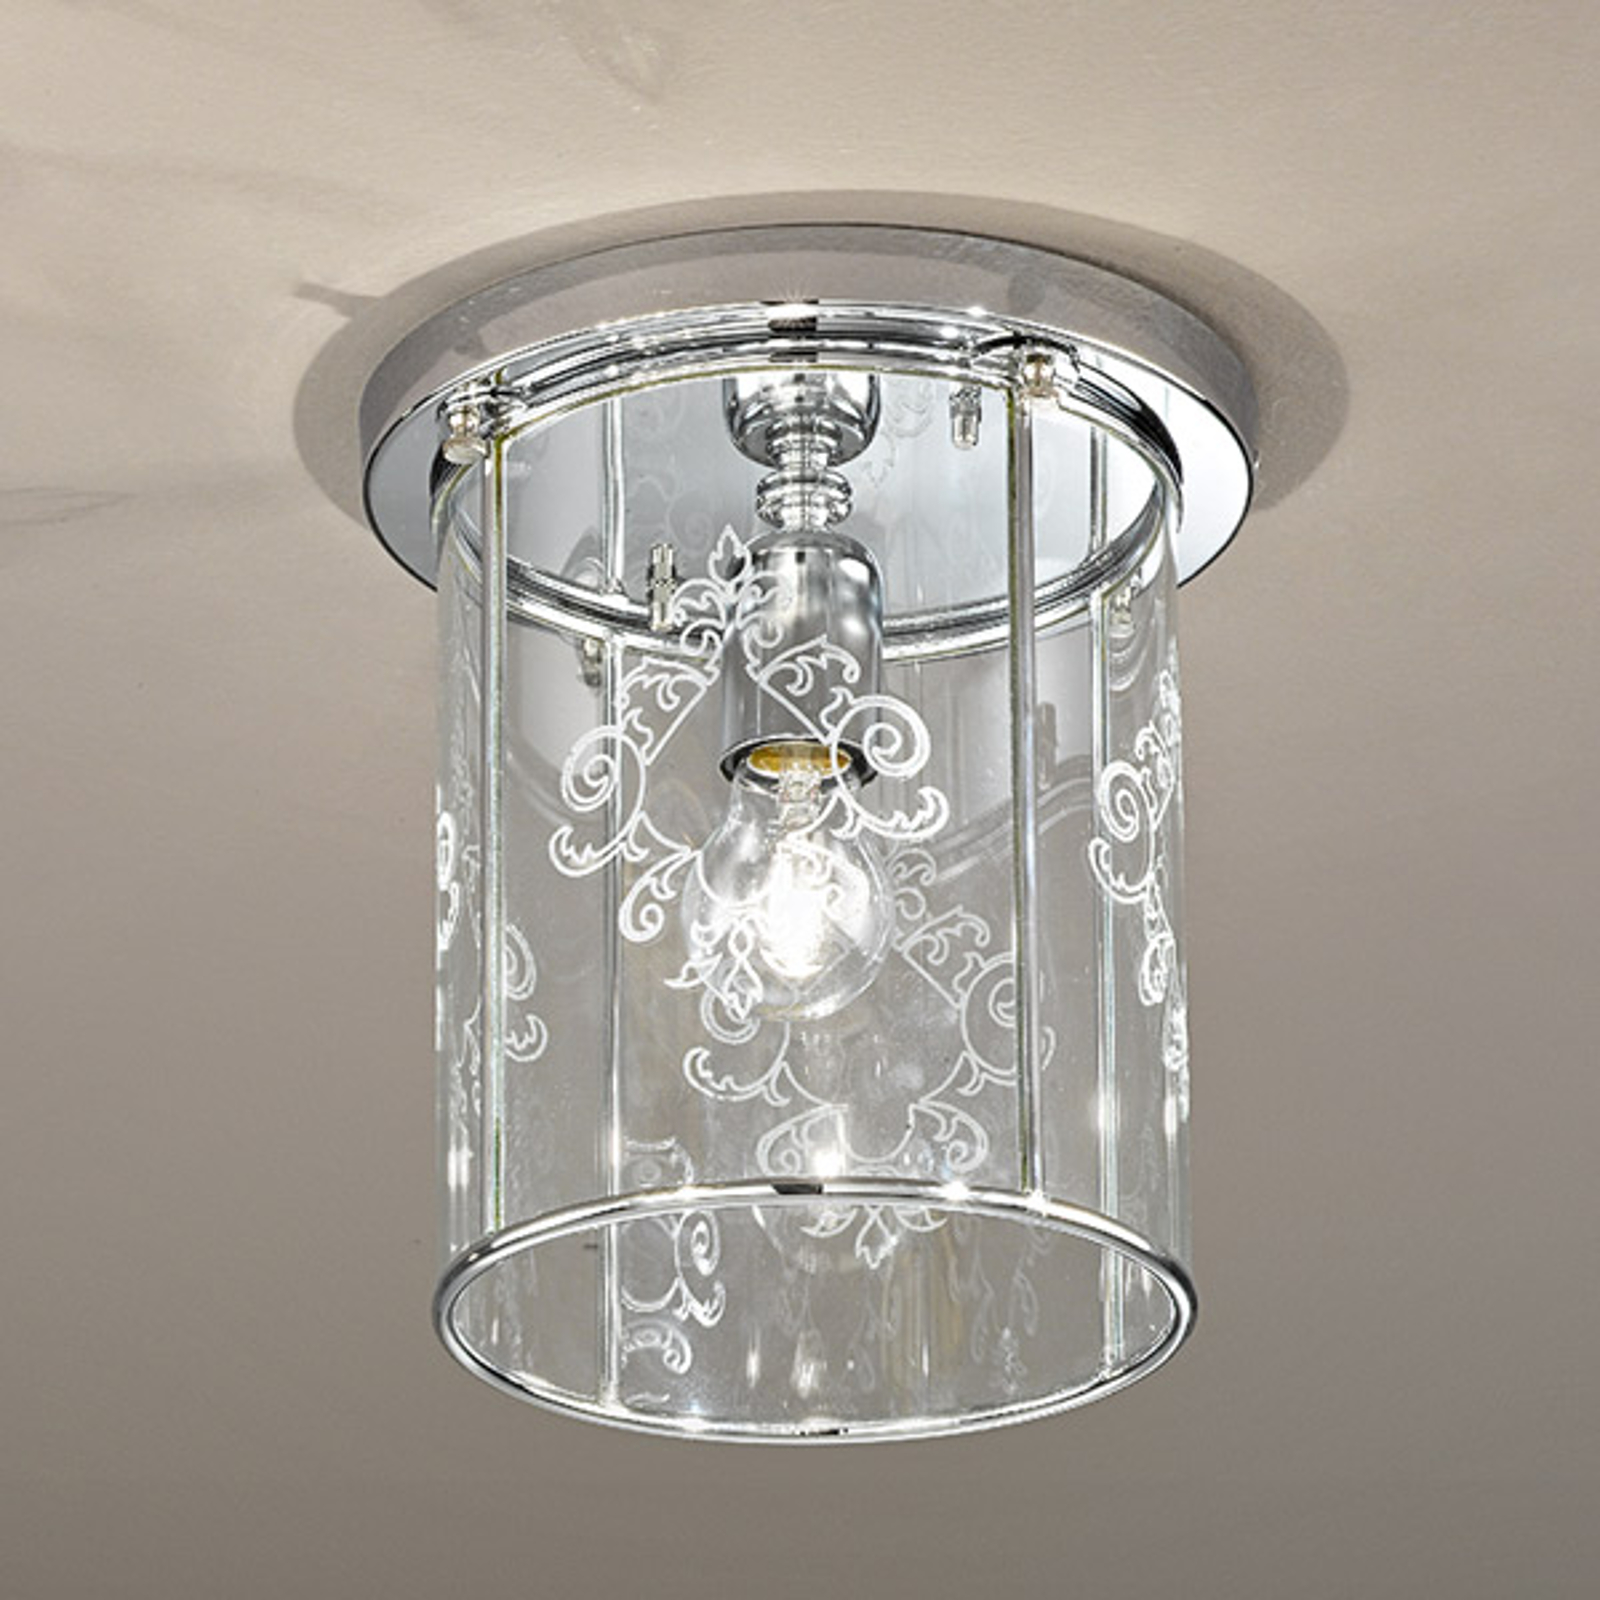 Greta ceiling light with decorated crystal glass_2008232_1